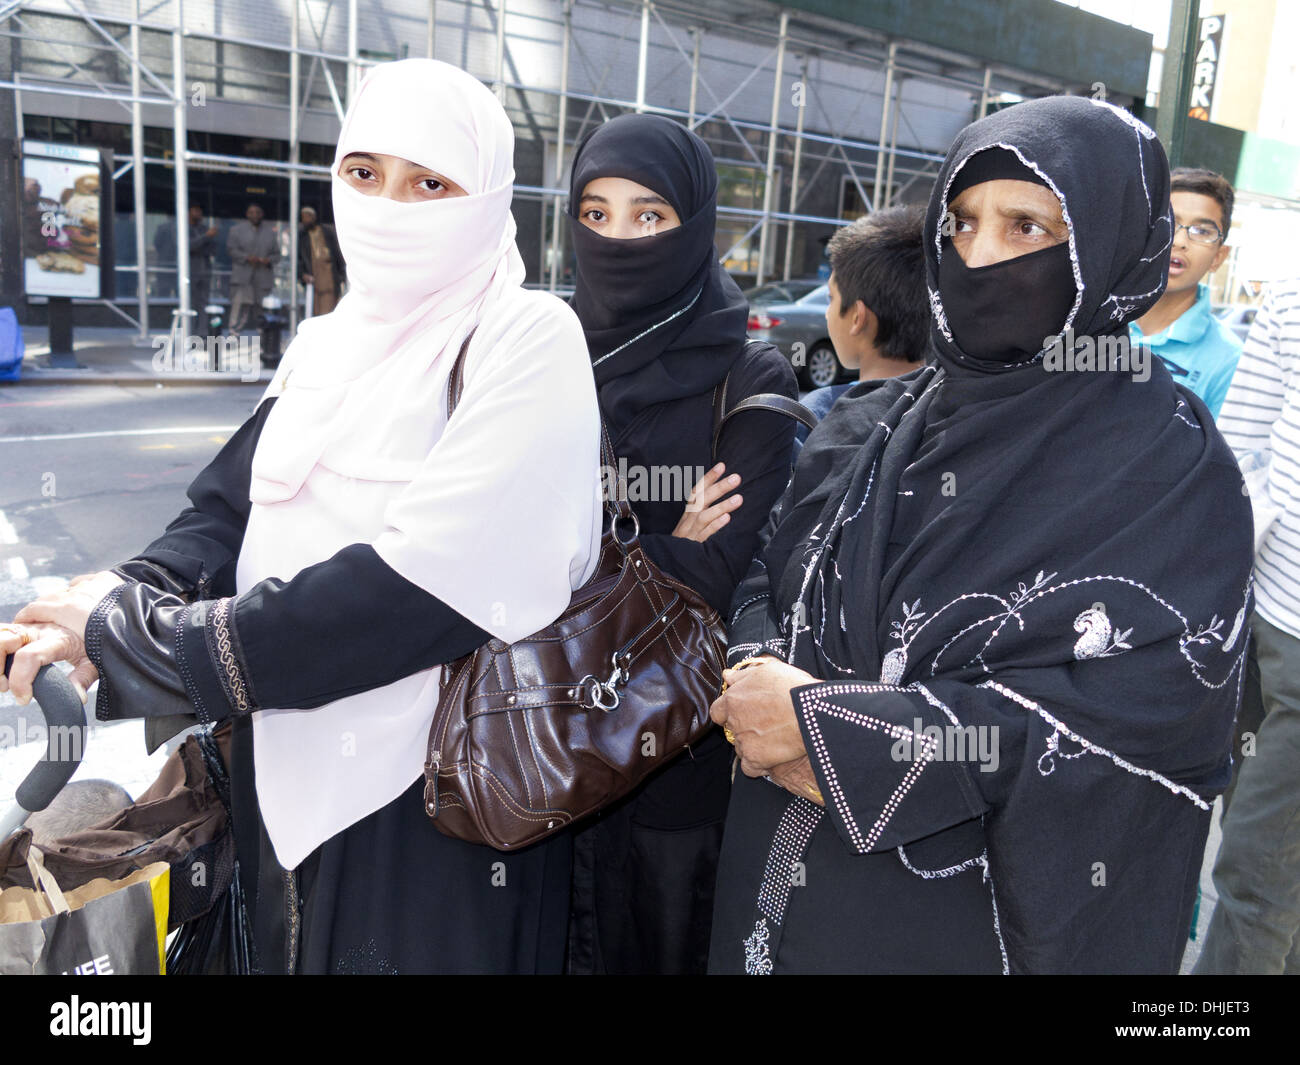 Women in hijabs and niqabs at Annual Muslim Day Parade, New York City, 2013. - Stock Image